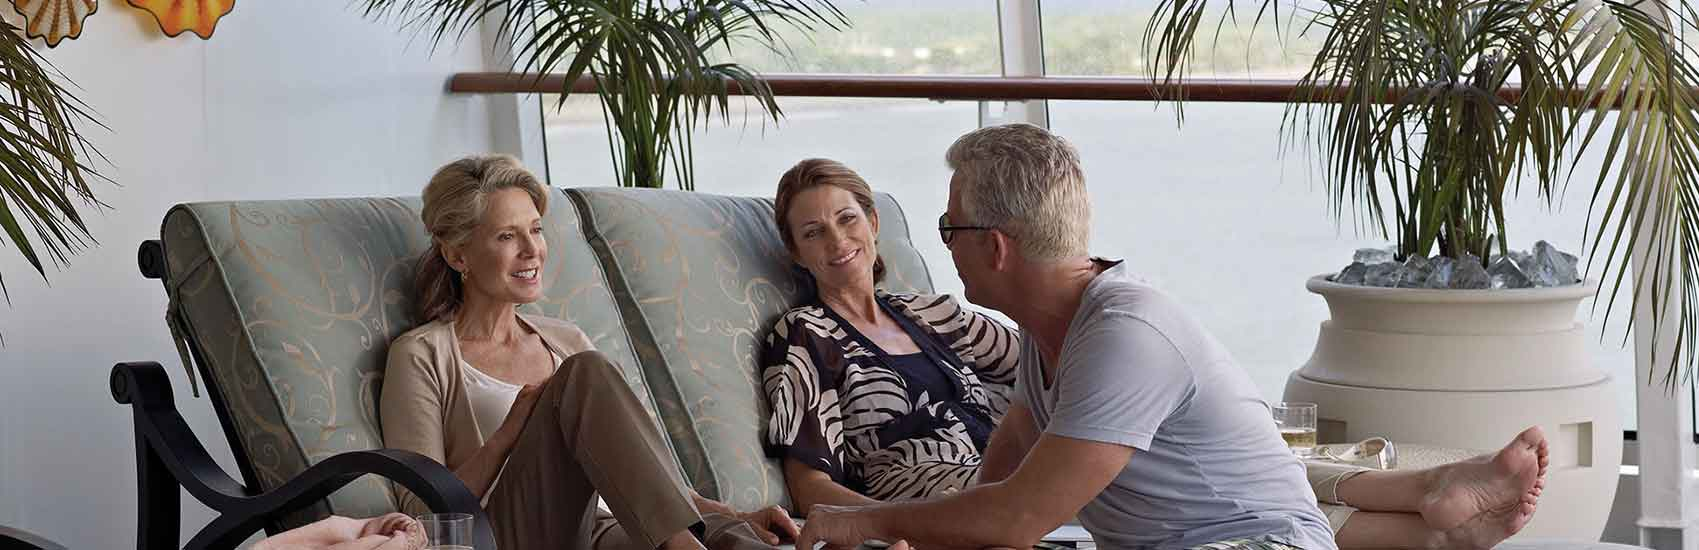 Exclusive Virtuoso Offer with Oceania Cruises 4